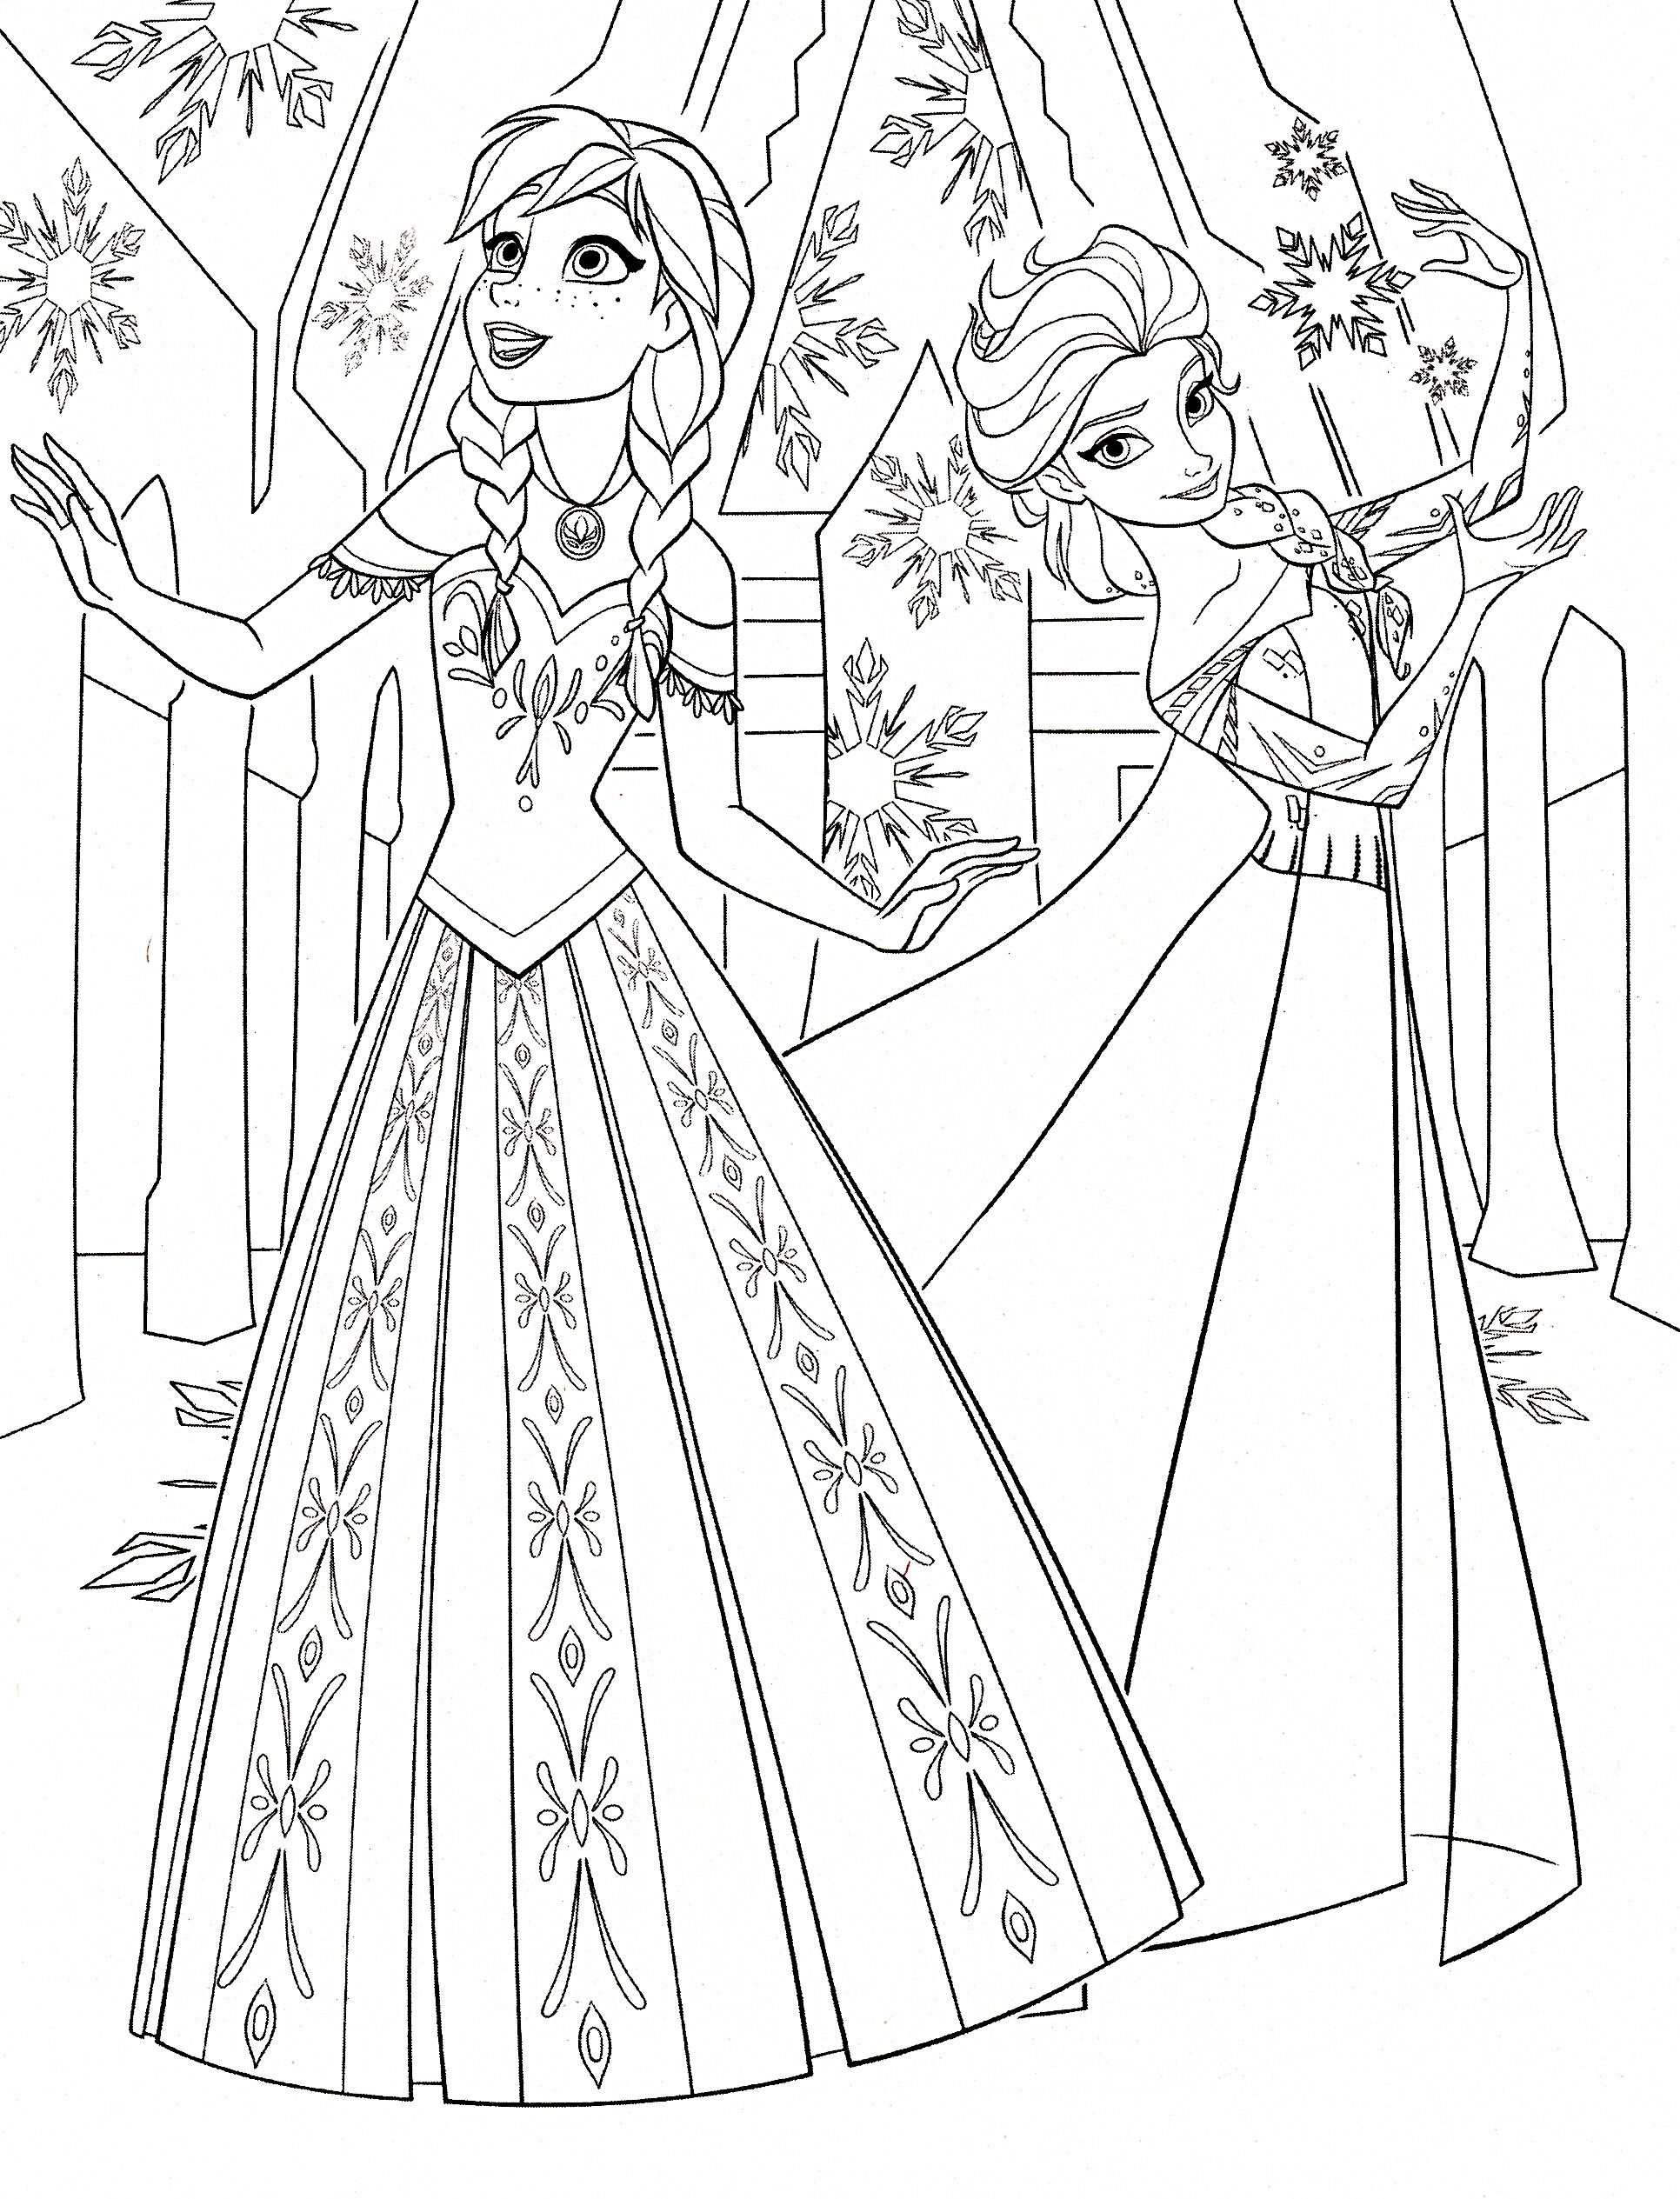 Elsa Anna Frozen Coloring Pages Disney Princess Coloring